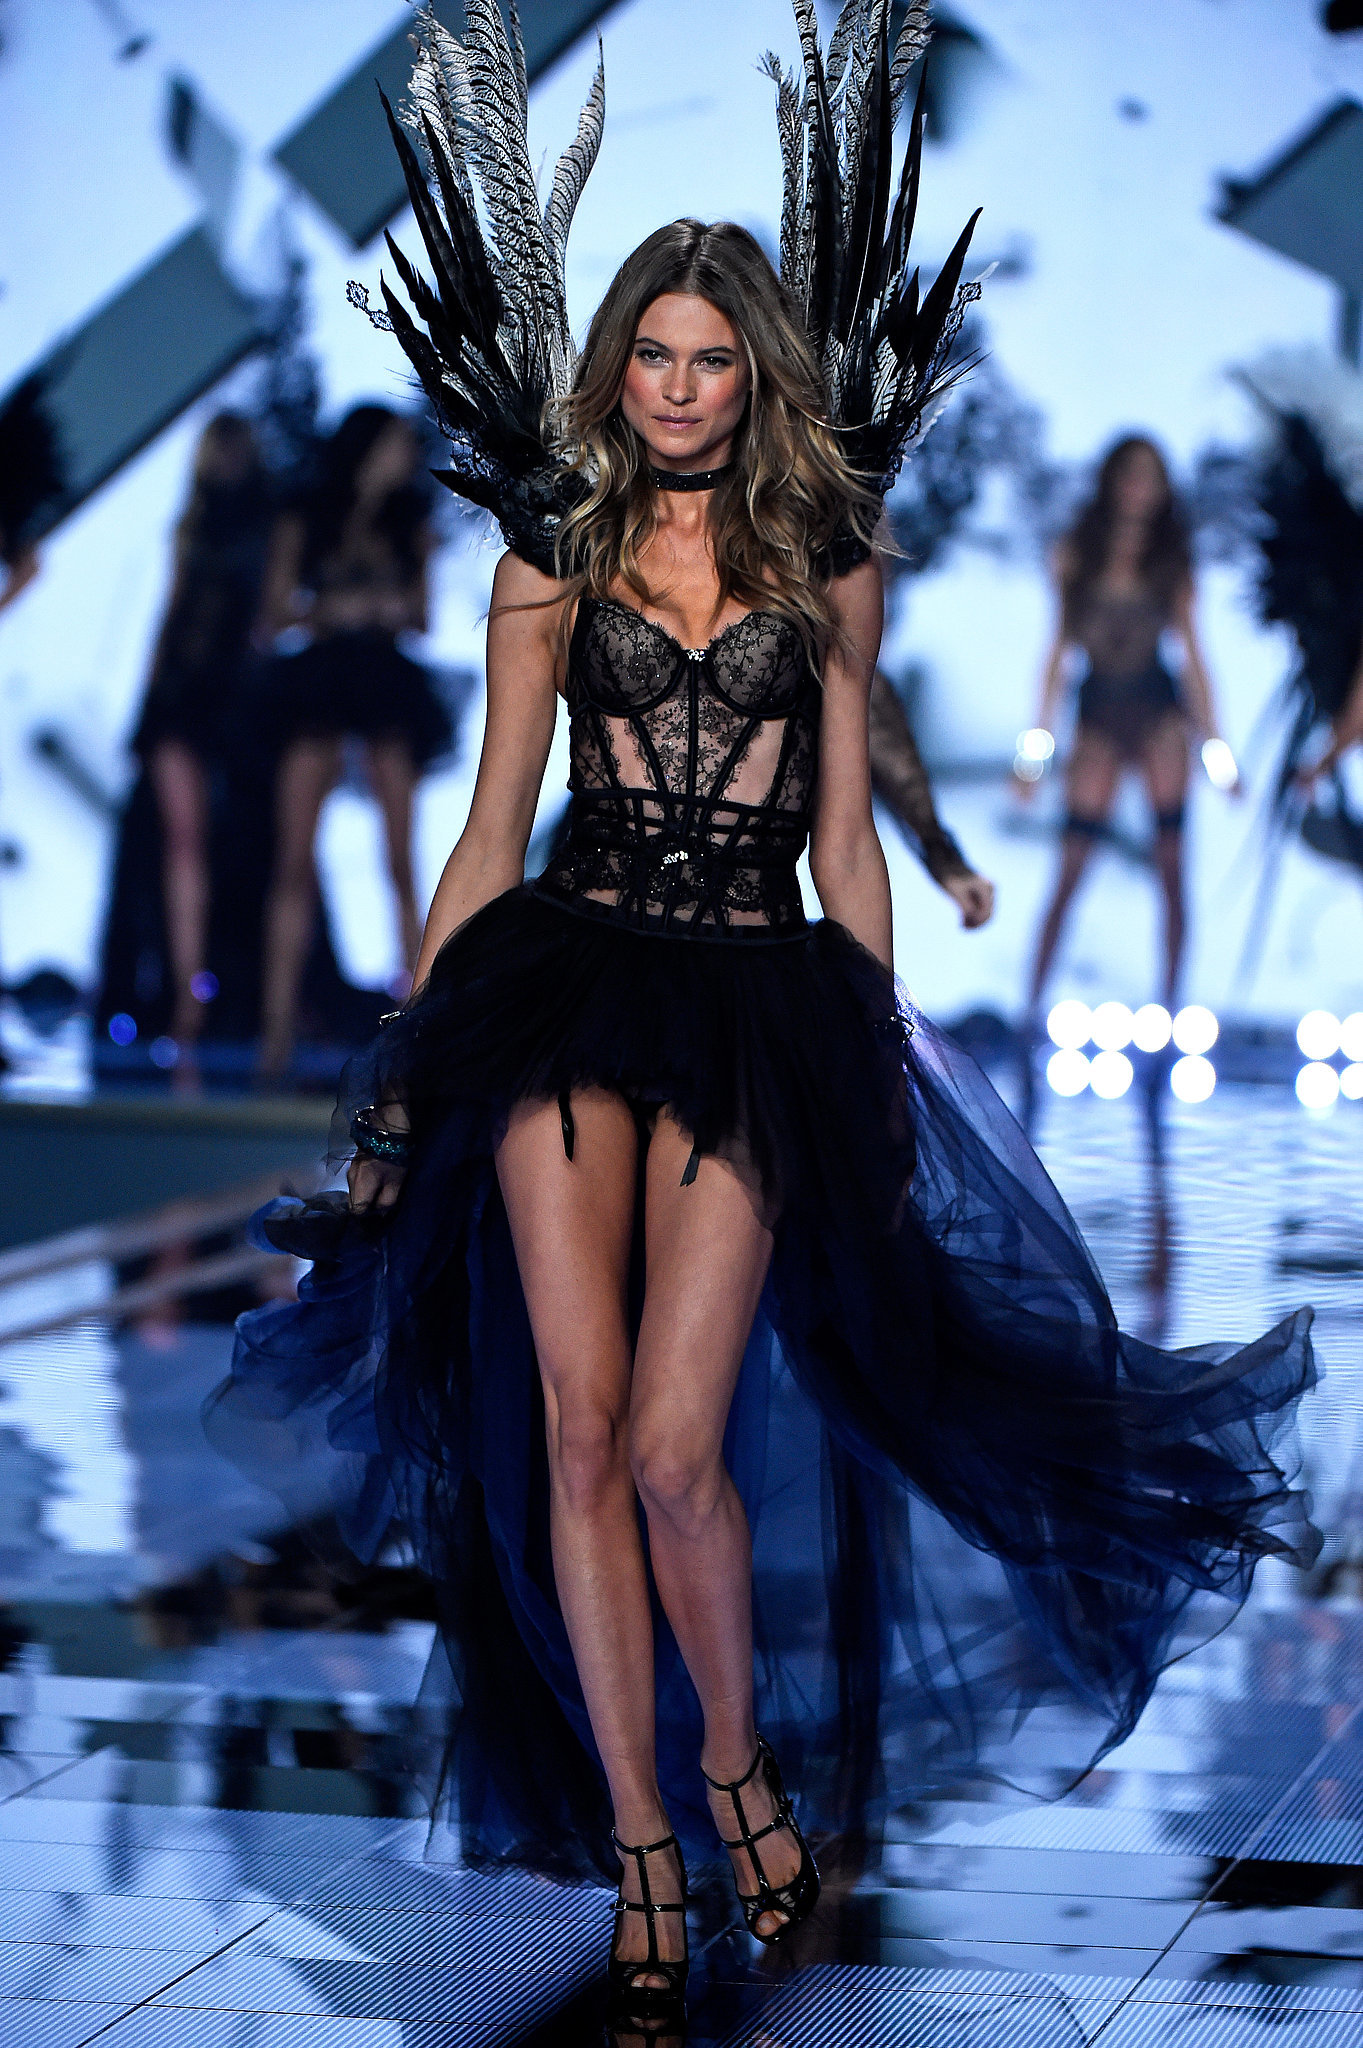 Victoria 39 S Secret Fashion Show 2014 See Every Jaw Dropping Look From The Victoria 39 S Secret